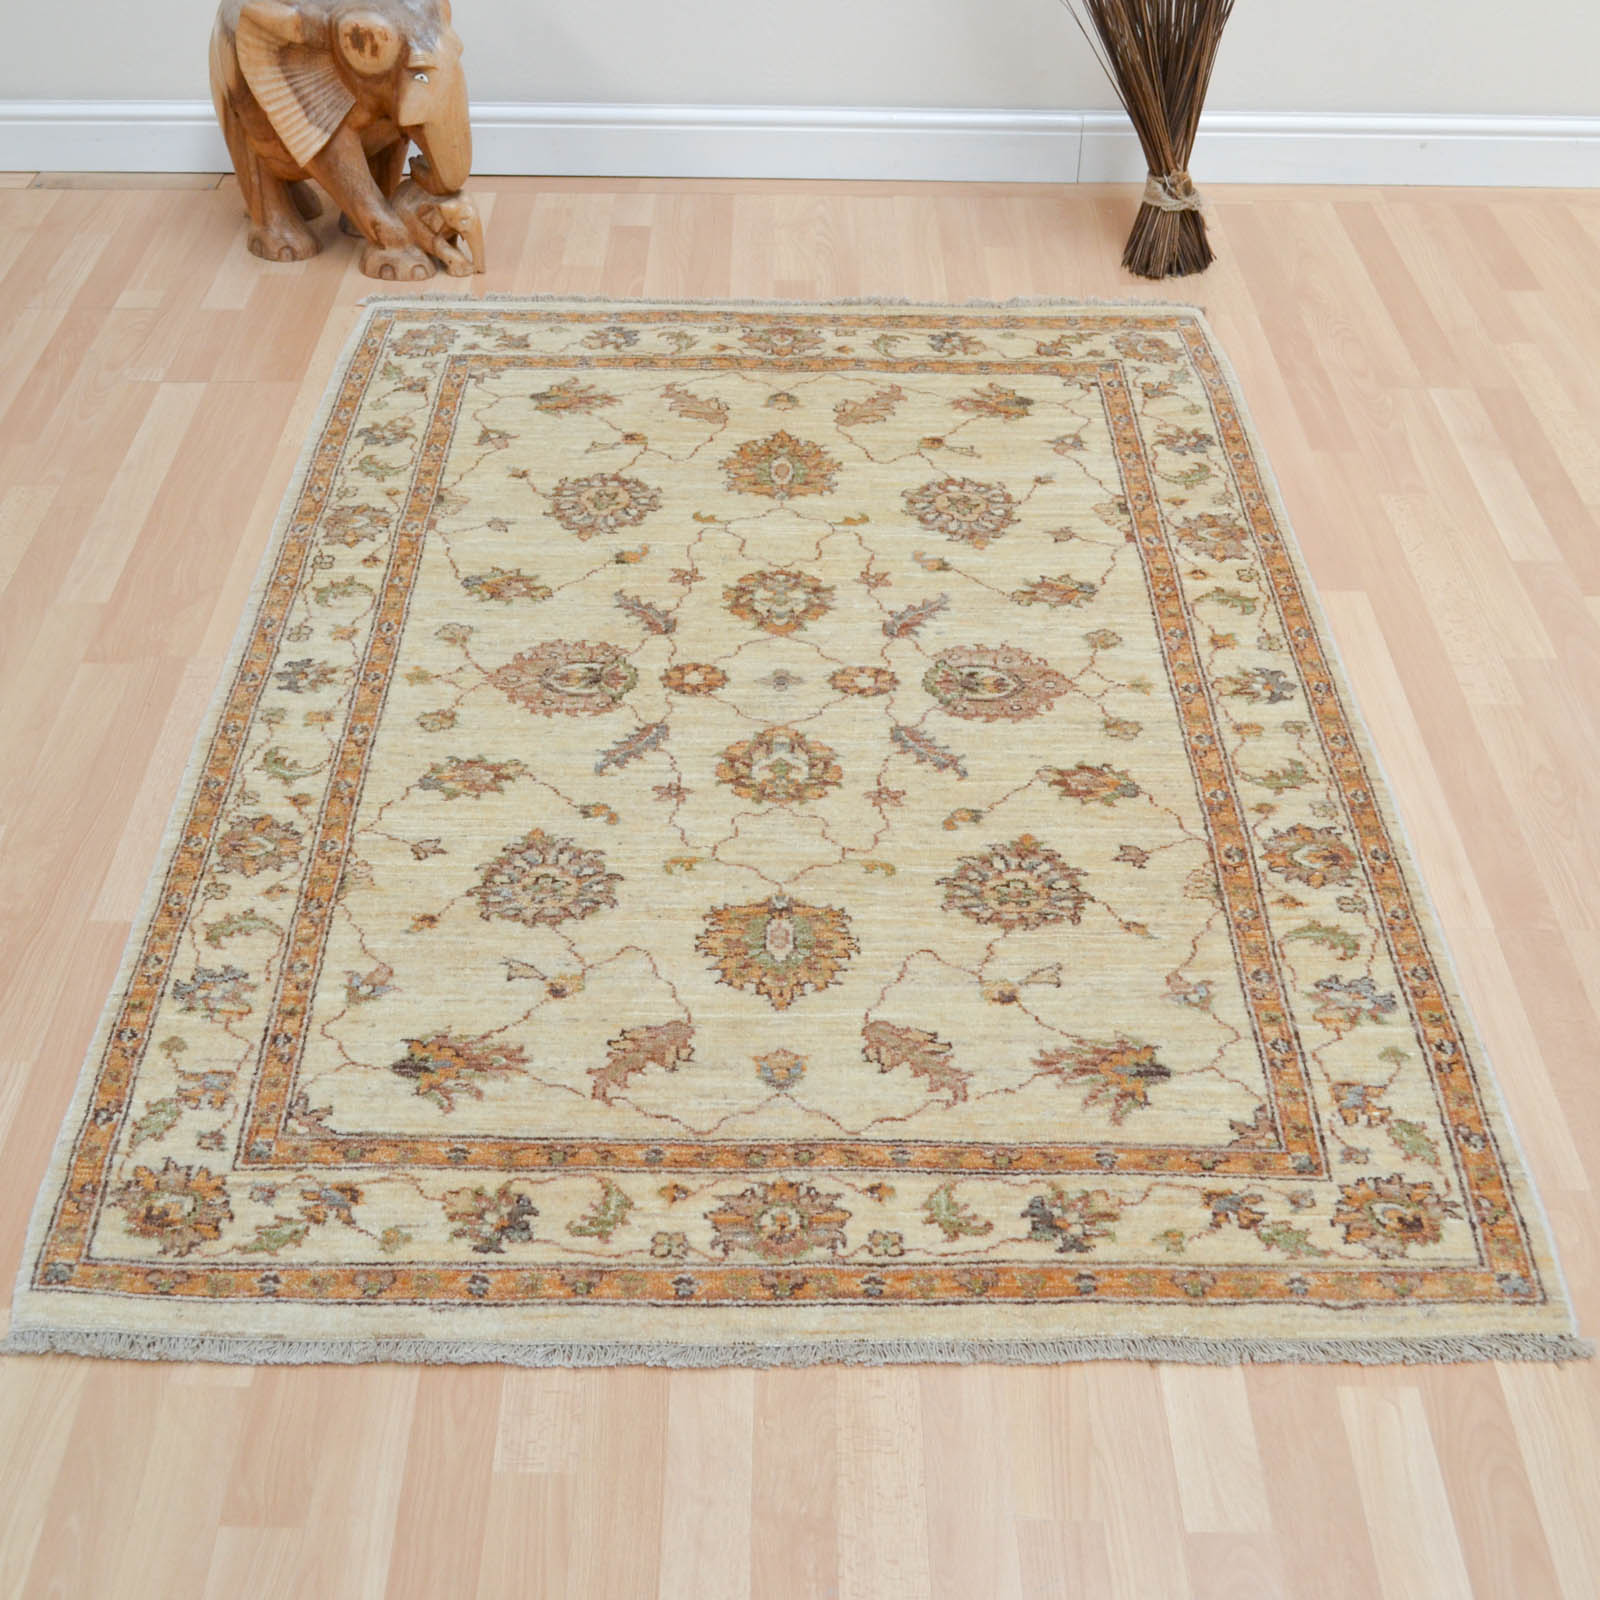 Hand Knotted Ziegler Wool Rugs in Cream